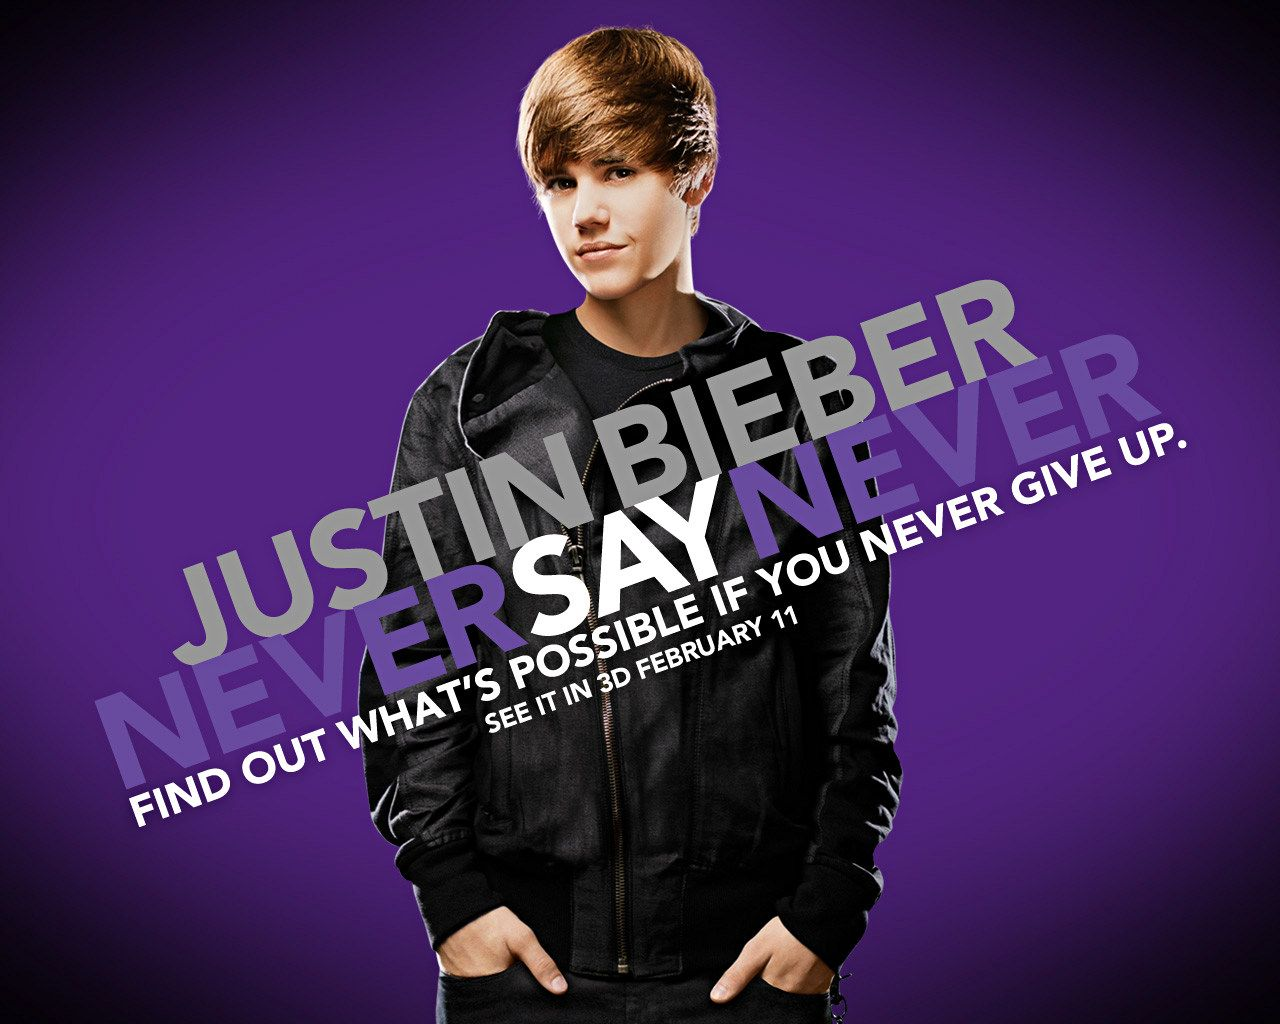 3. Never Say Never Movie Received Harsh Criticism